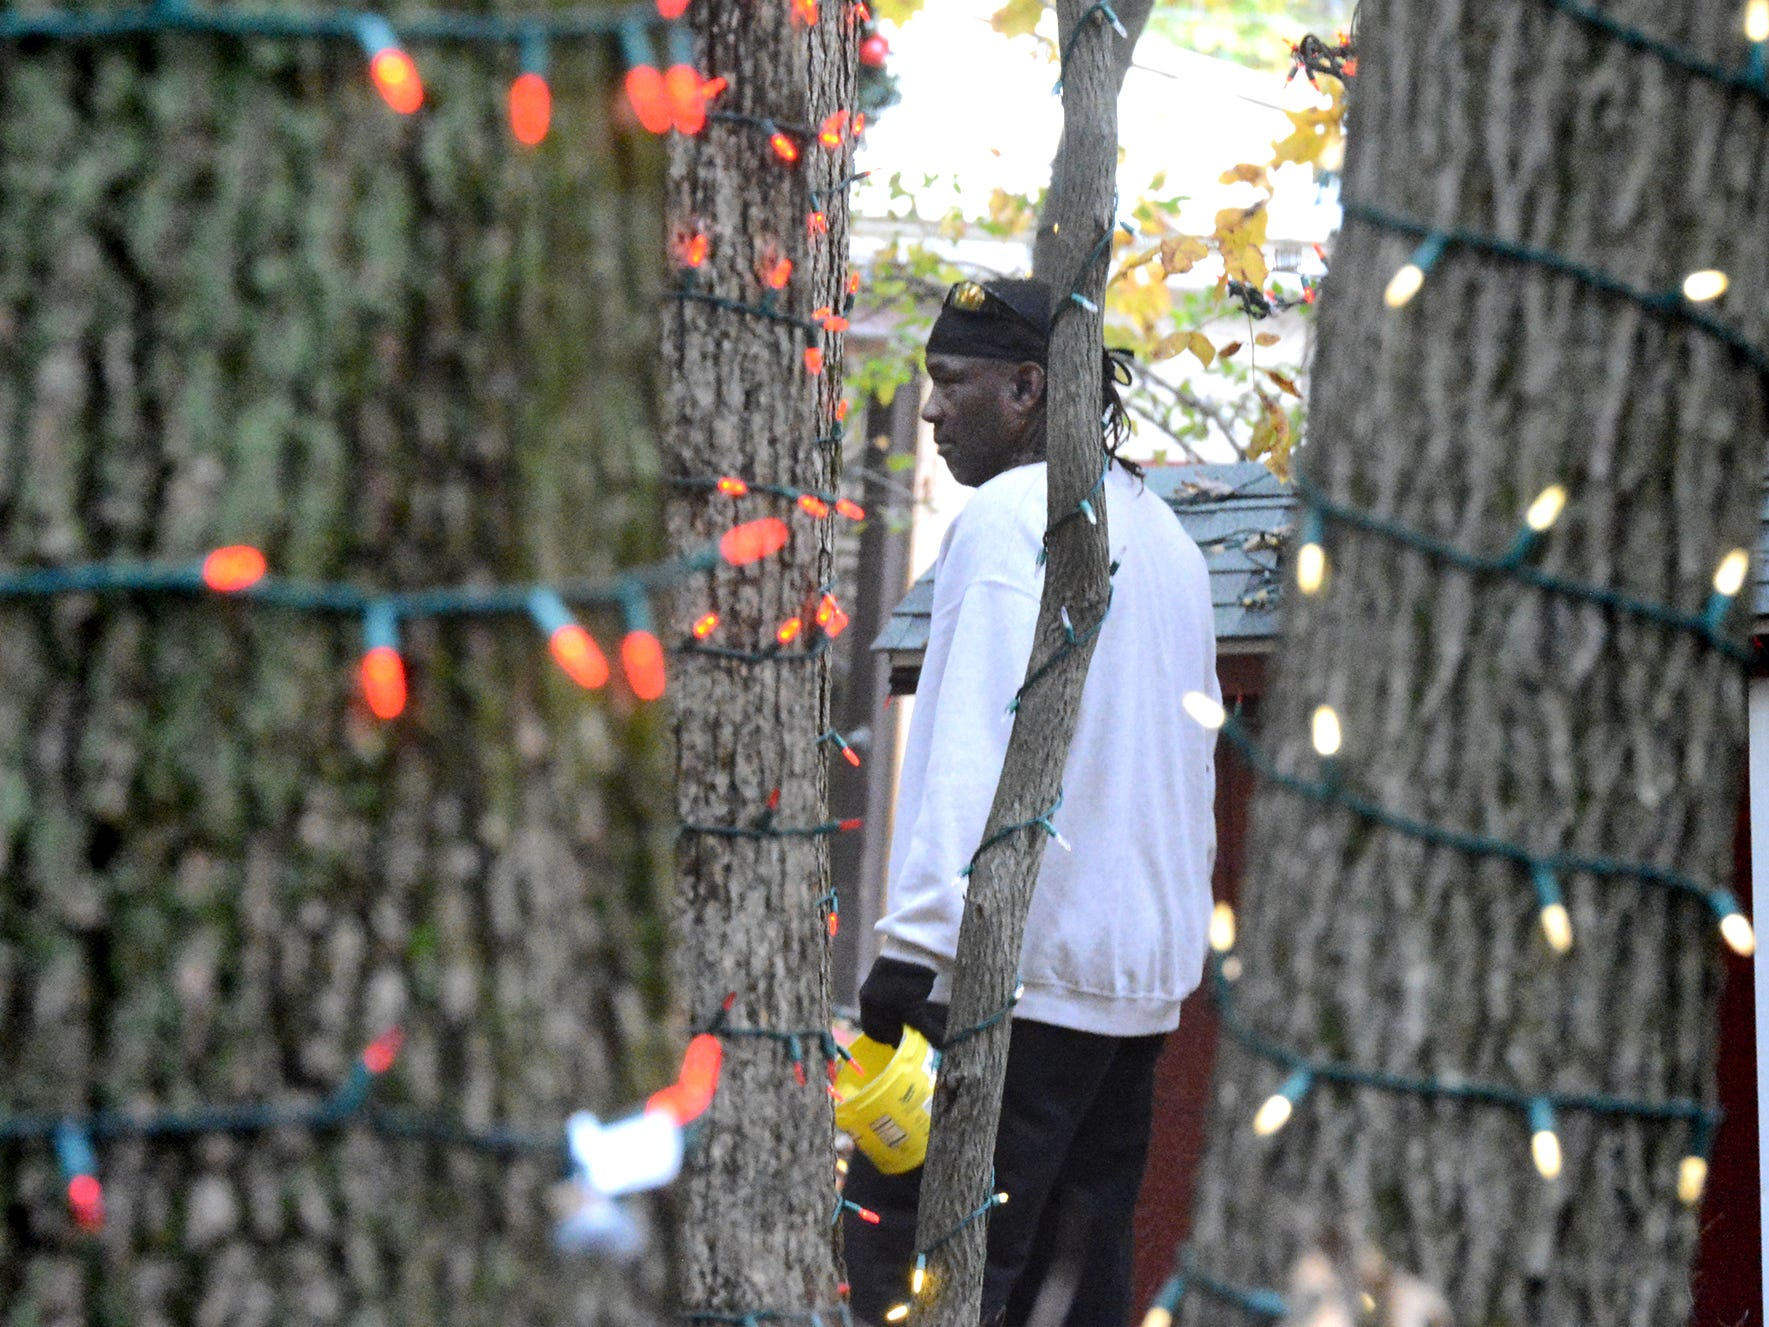 York County work release inmate Marty Hawk checks lights at Rocky Ridge Park, Monday, Oct. 29, 2018, while preparing for the Christmas Magic event. The event, featuring 600,000 lights along a half-mile trail, is in its 35th year. Christmas Magic runs daily from Nov. 23 through December 31. It is closed on Dec. 24 and 25. Hours for the event are Monday through Thursday, 6-9 p.m.; and Friday through Sunday, 5-9 p.m. Tickets will available online starting in early November, according to the department's website. Friday, Saturday and Sunday require pre-purchased ticket sales. Bill Kalina photo